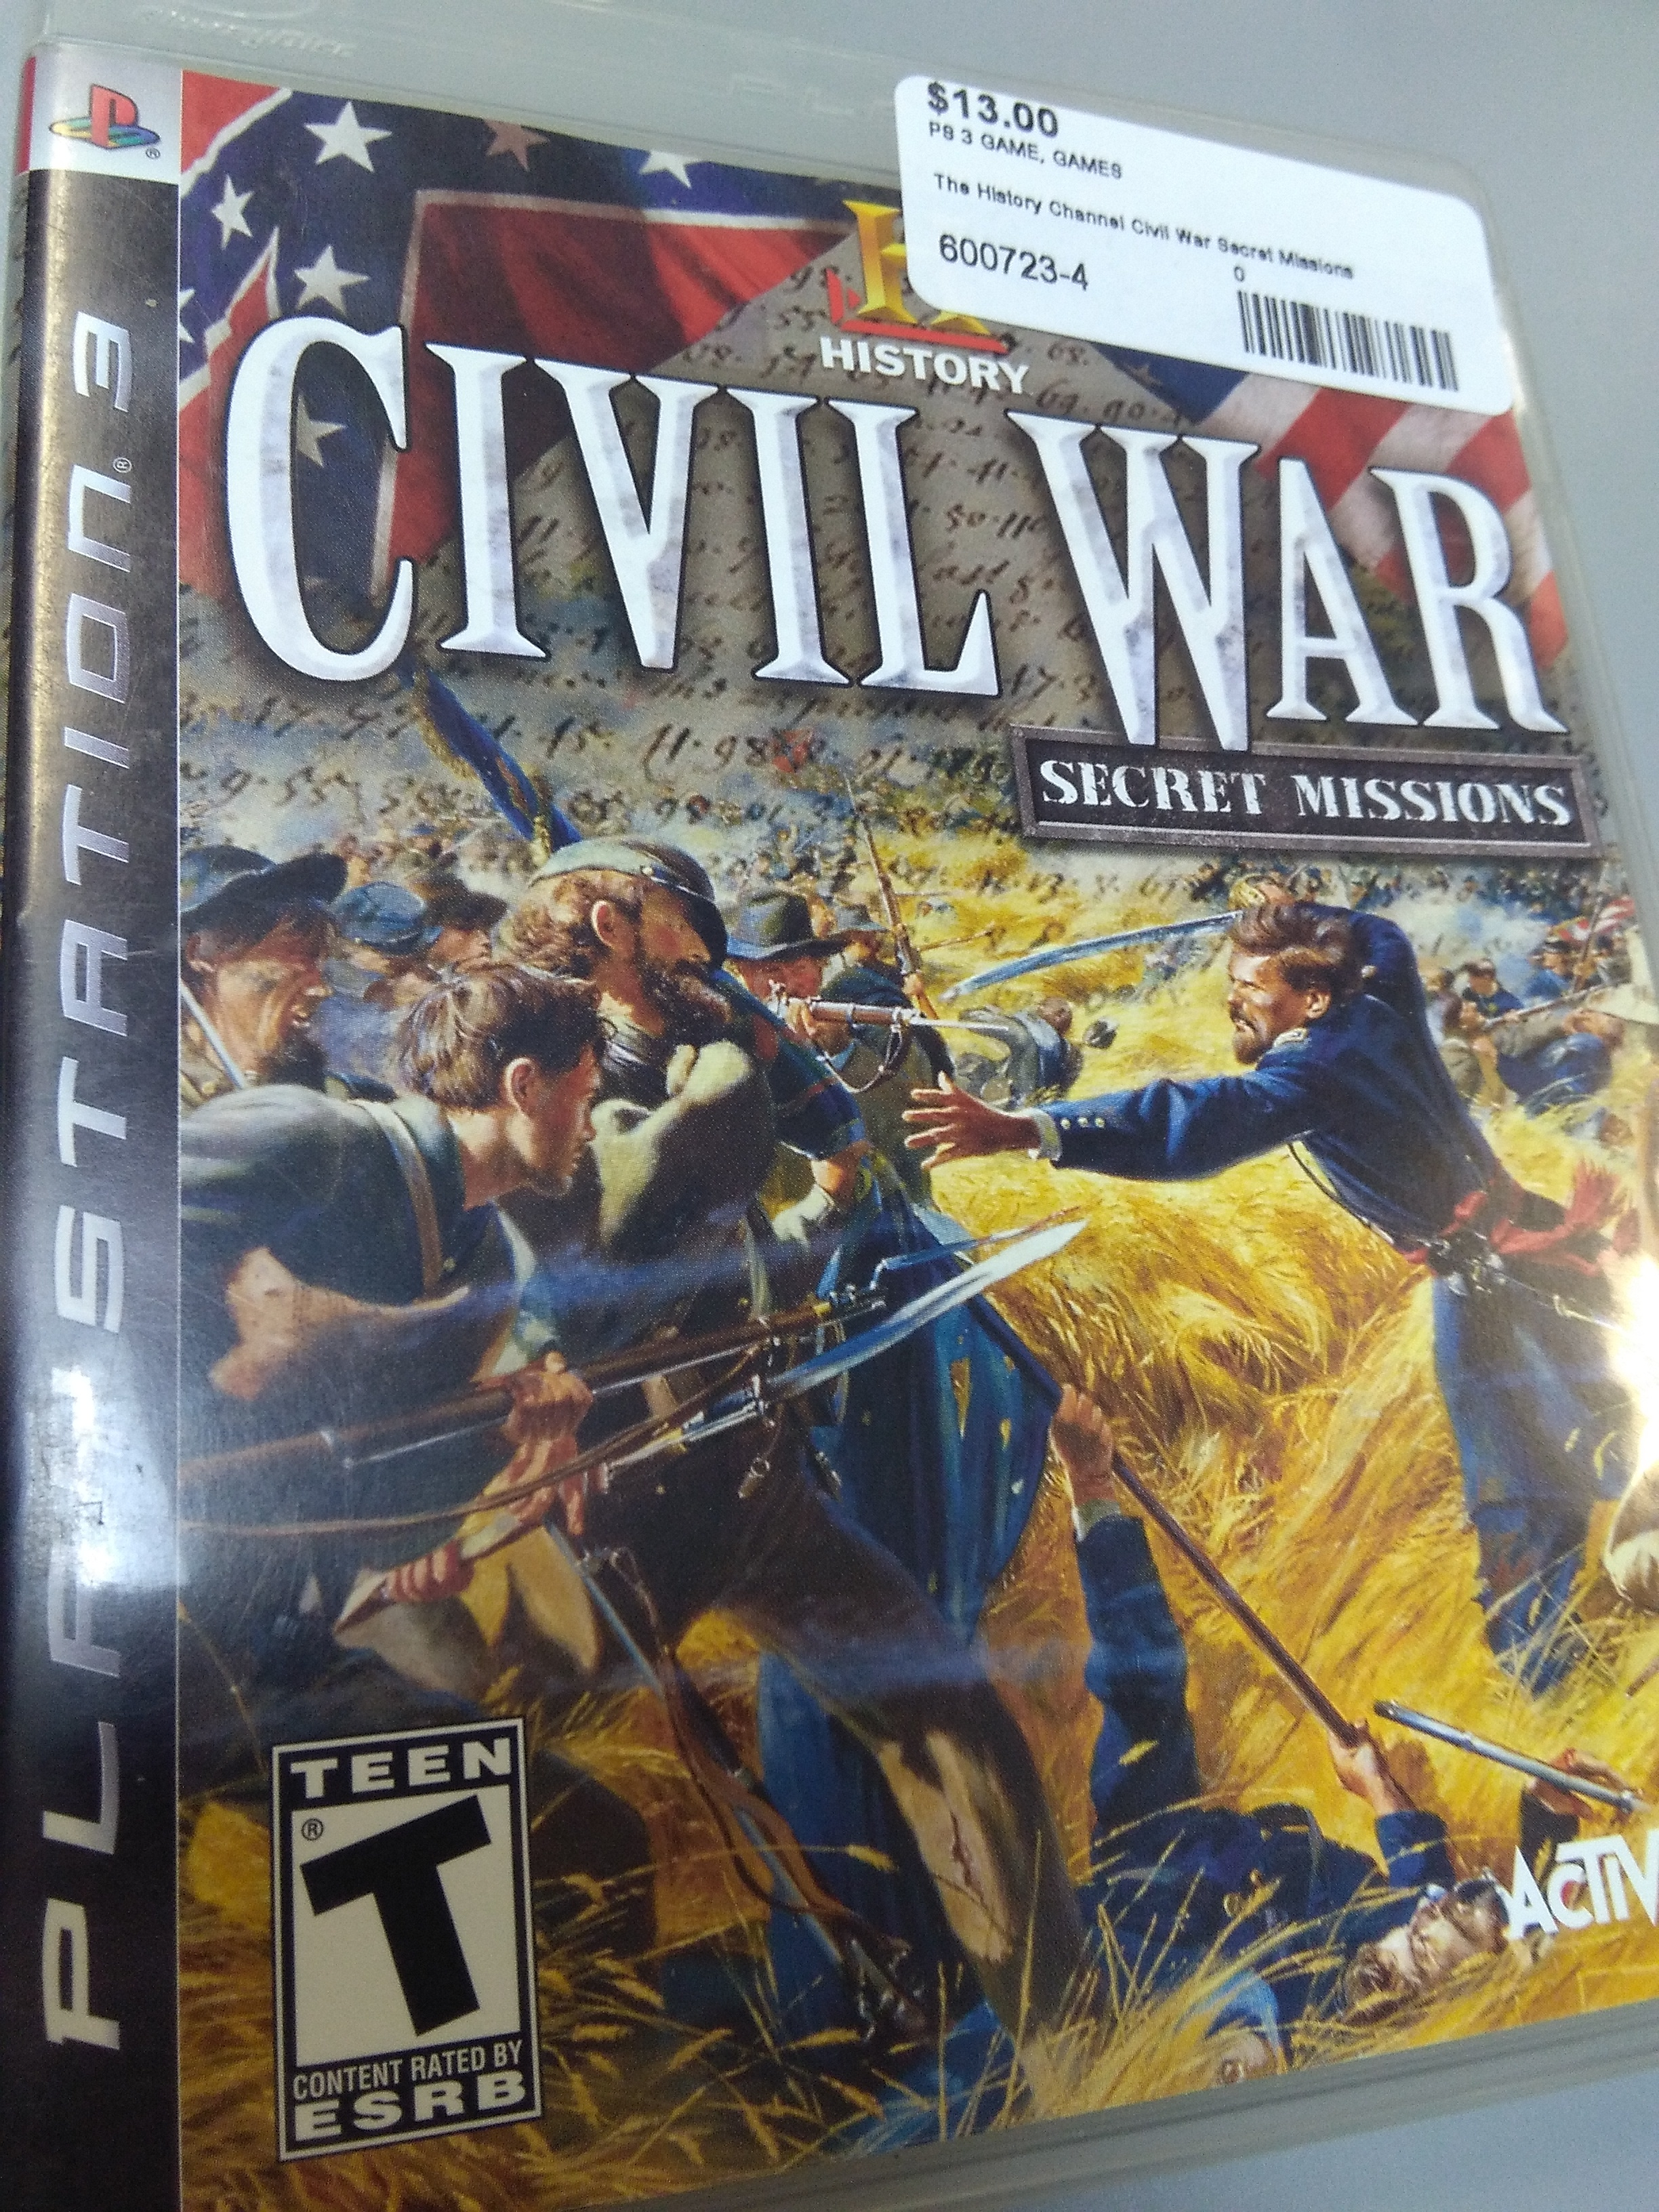 The History Channel Civil War Secret Missions for PS3